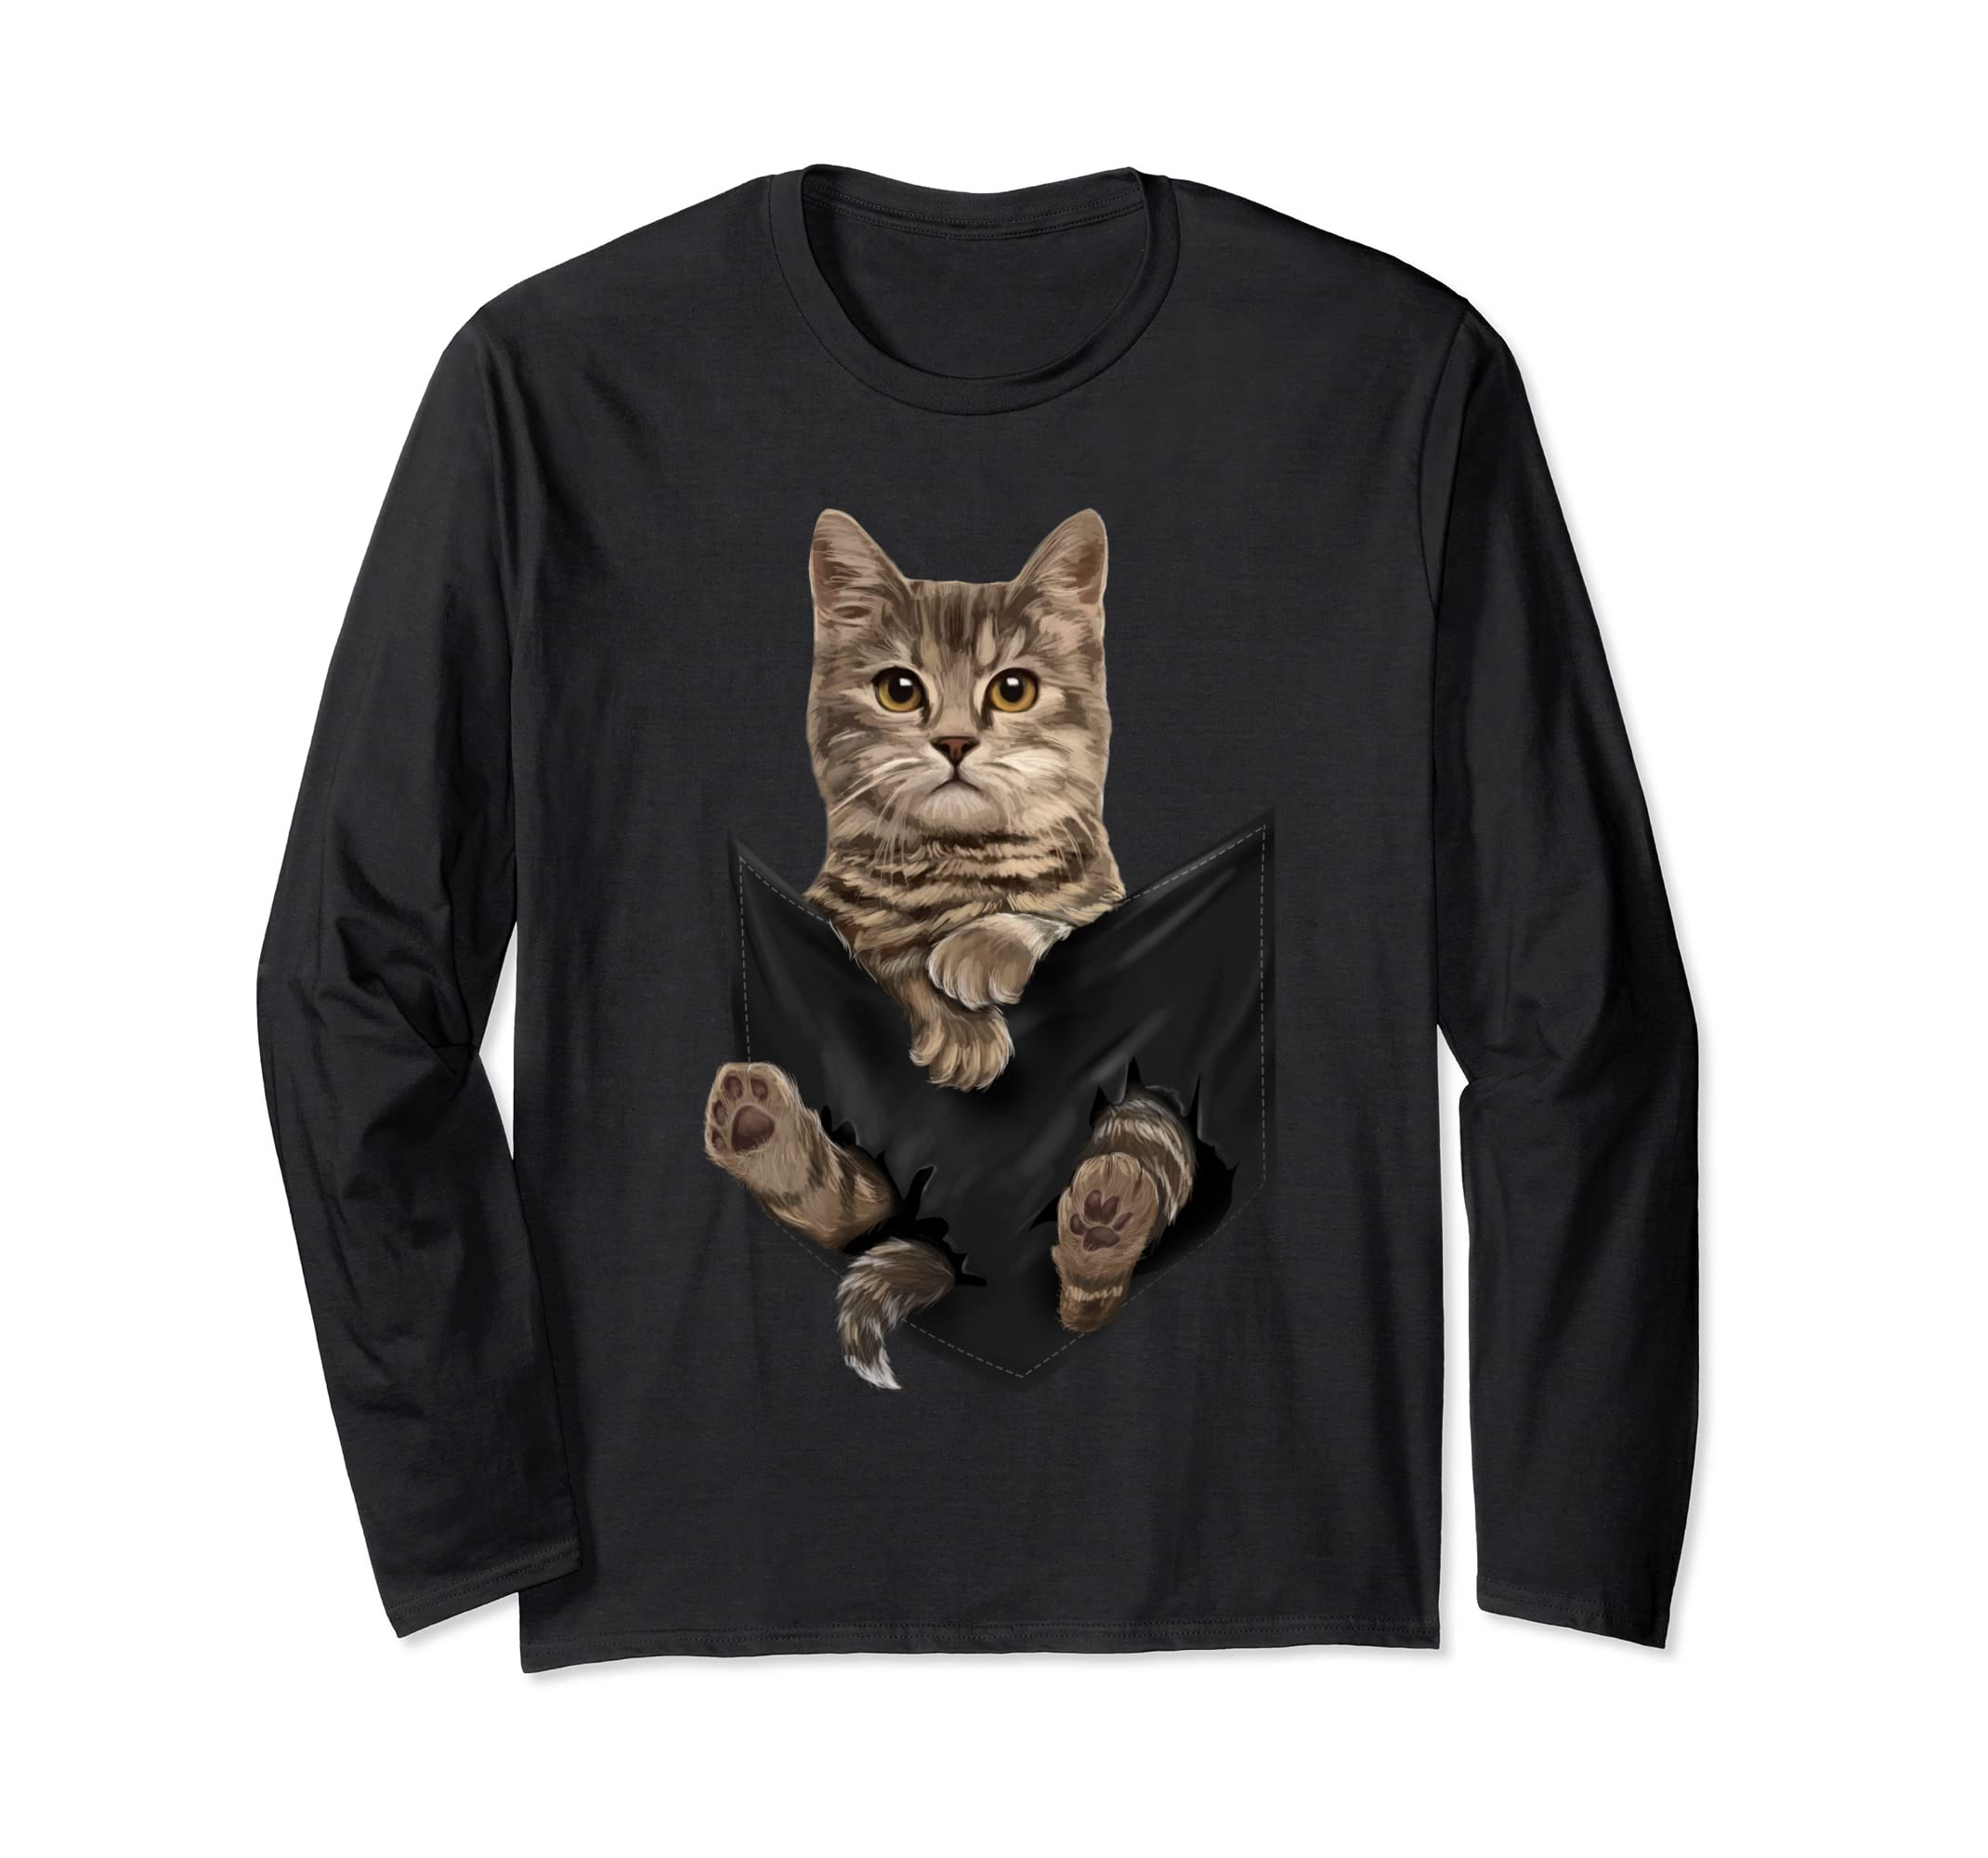 Brown Cat Sits in Pocket Long Sleeves Cats Tee Shirt Gifts-Teehay